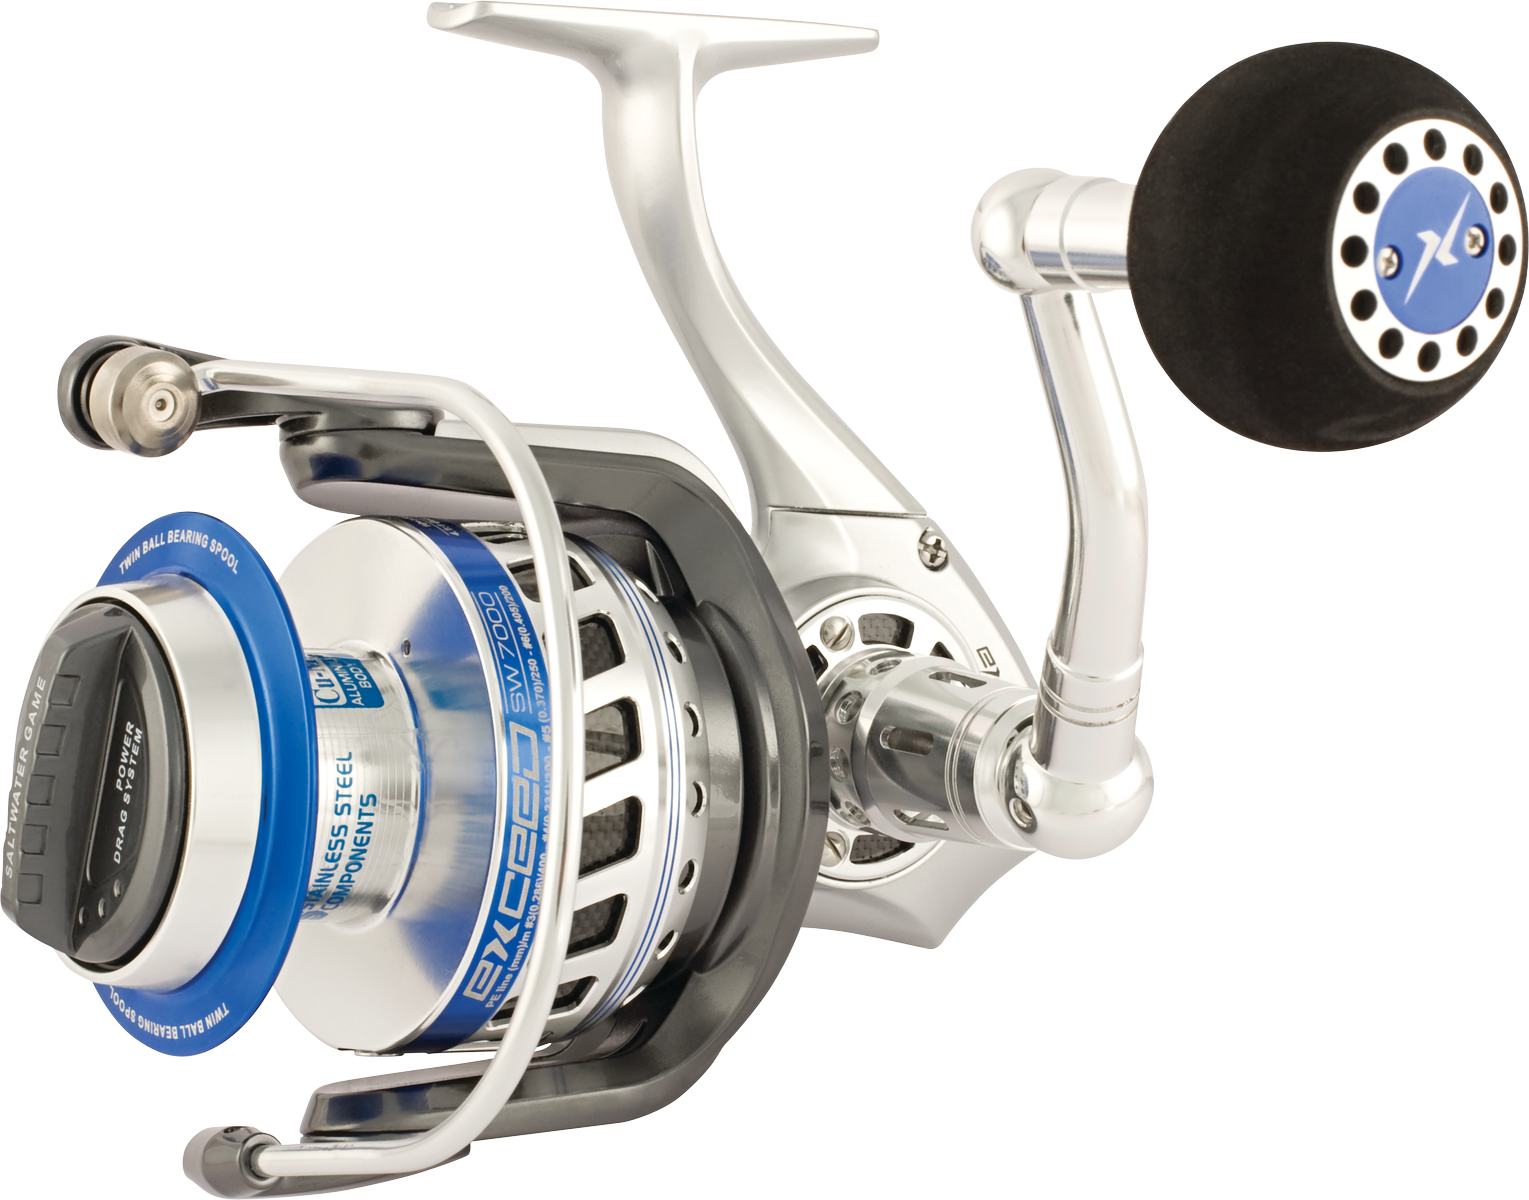 TRABUCCO EXCEED SW 7000 & 10000 Saltwater energia gioco reel